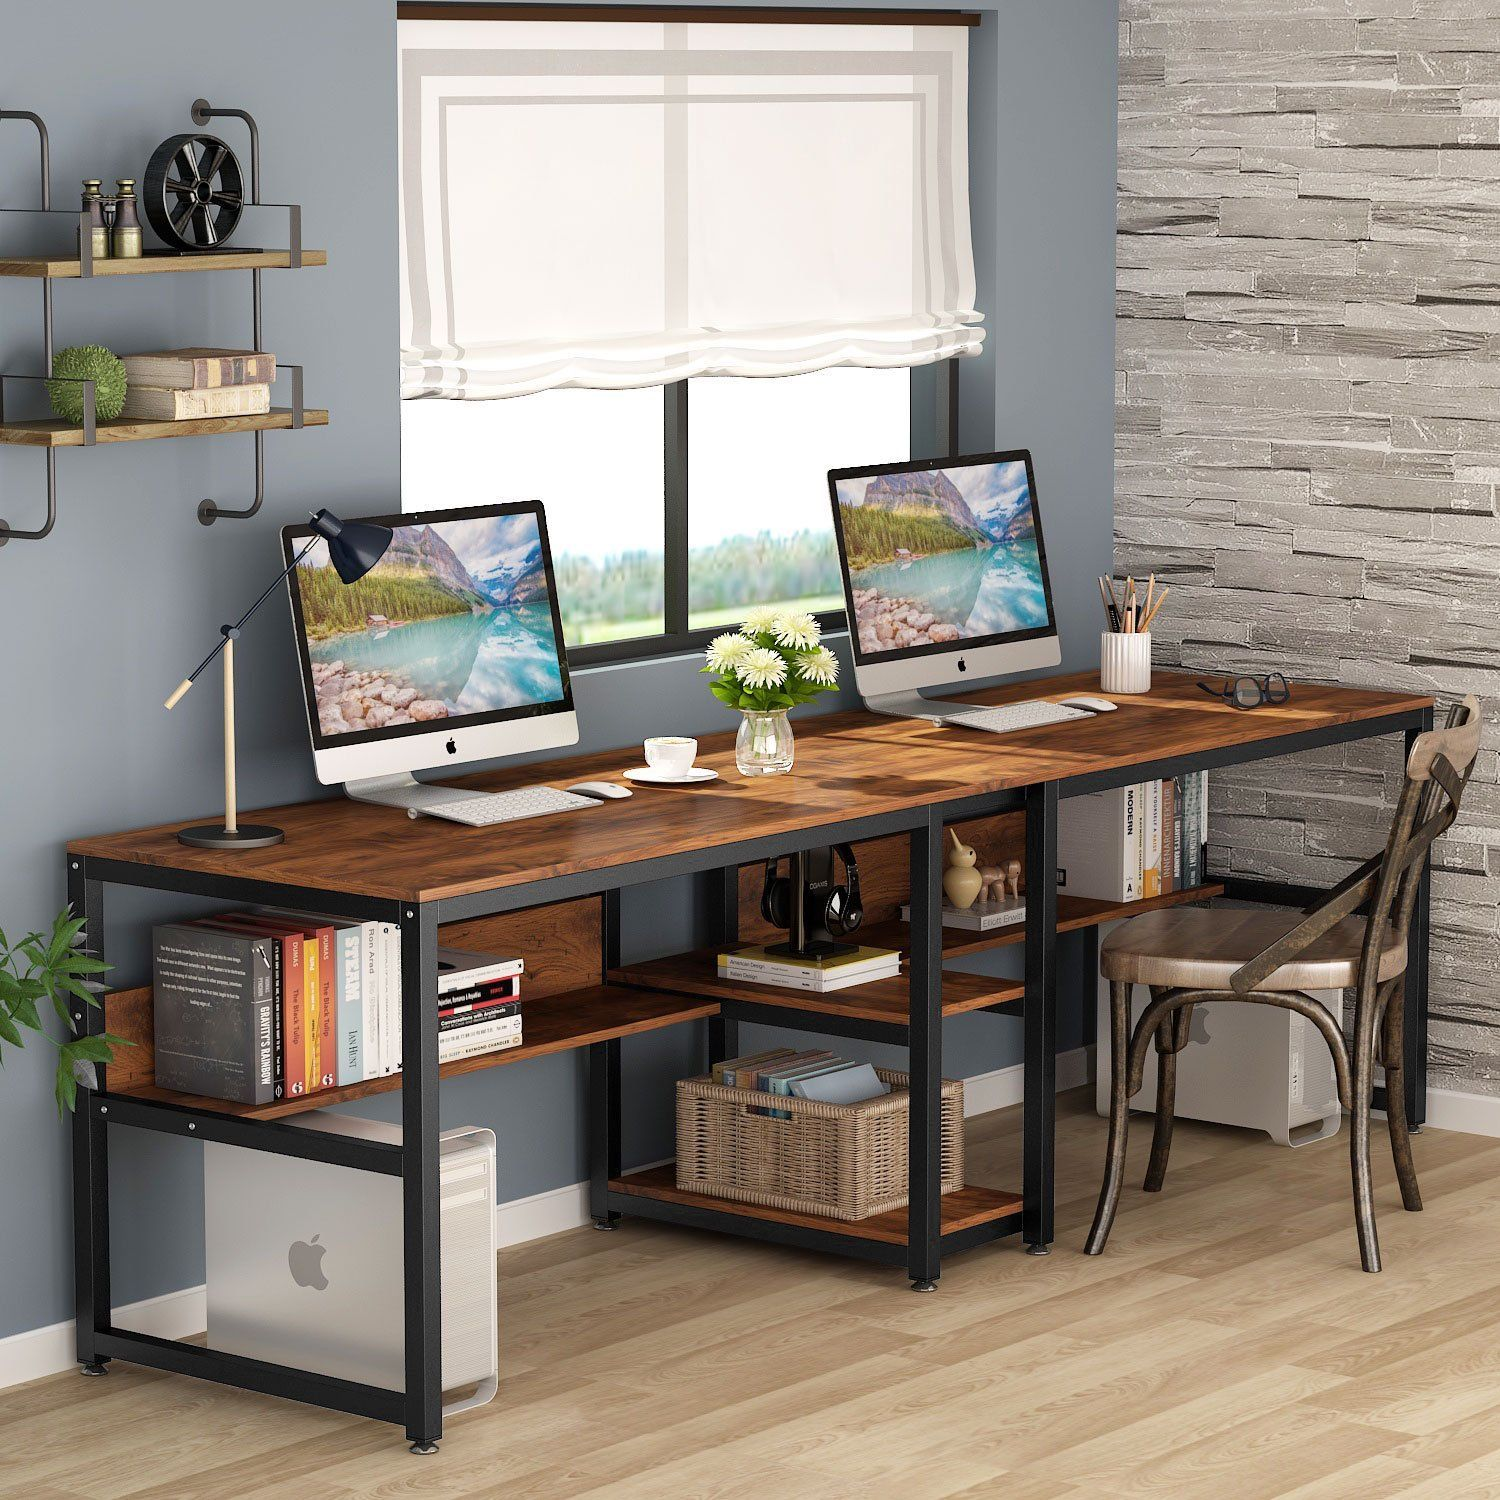 Tribesigns Two Person Desk With Bookshelf 78 7 Computer Office Double Desk For Two Person Rustic Writing Des In 2020 Two Person Desk Desk For Two Rustic Writing Desk